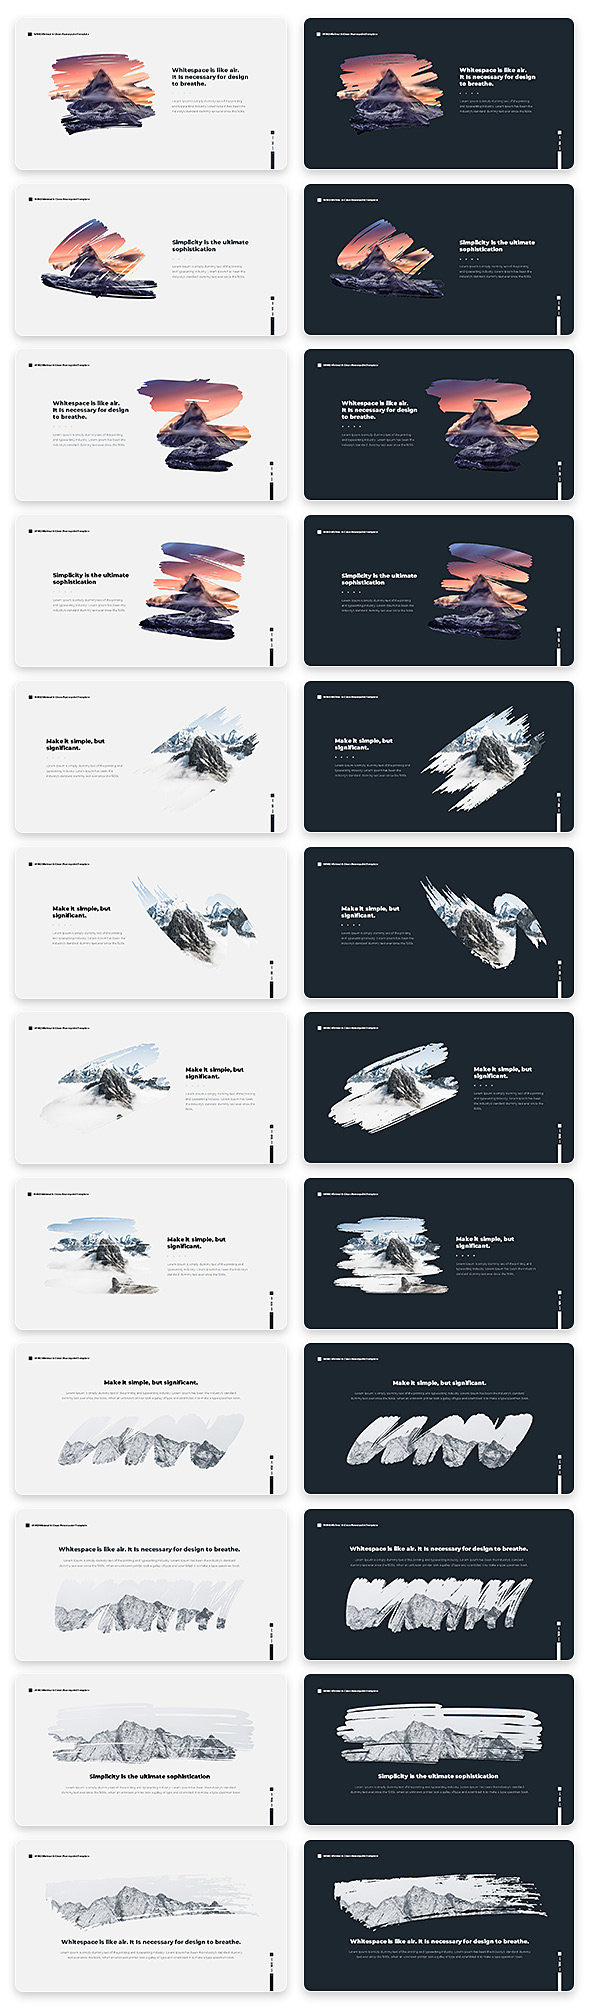 Wind Minimal & Clean Powerpoint With Text Animation Pack - 8